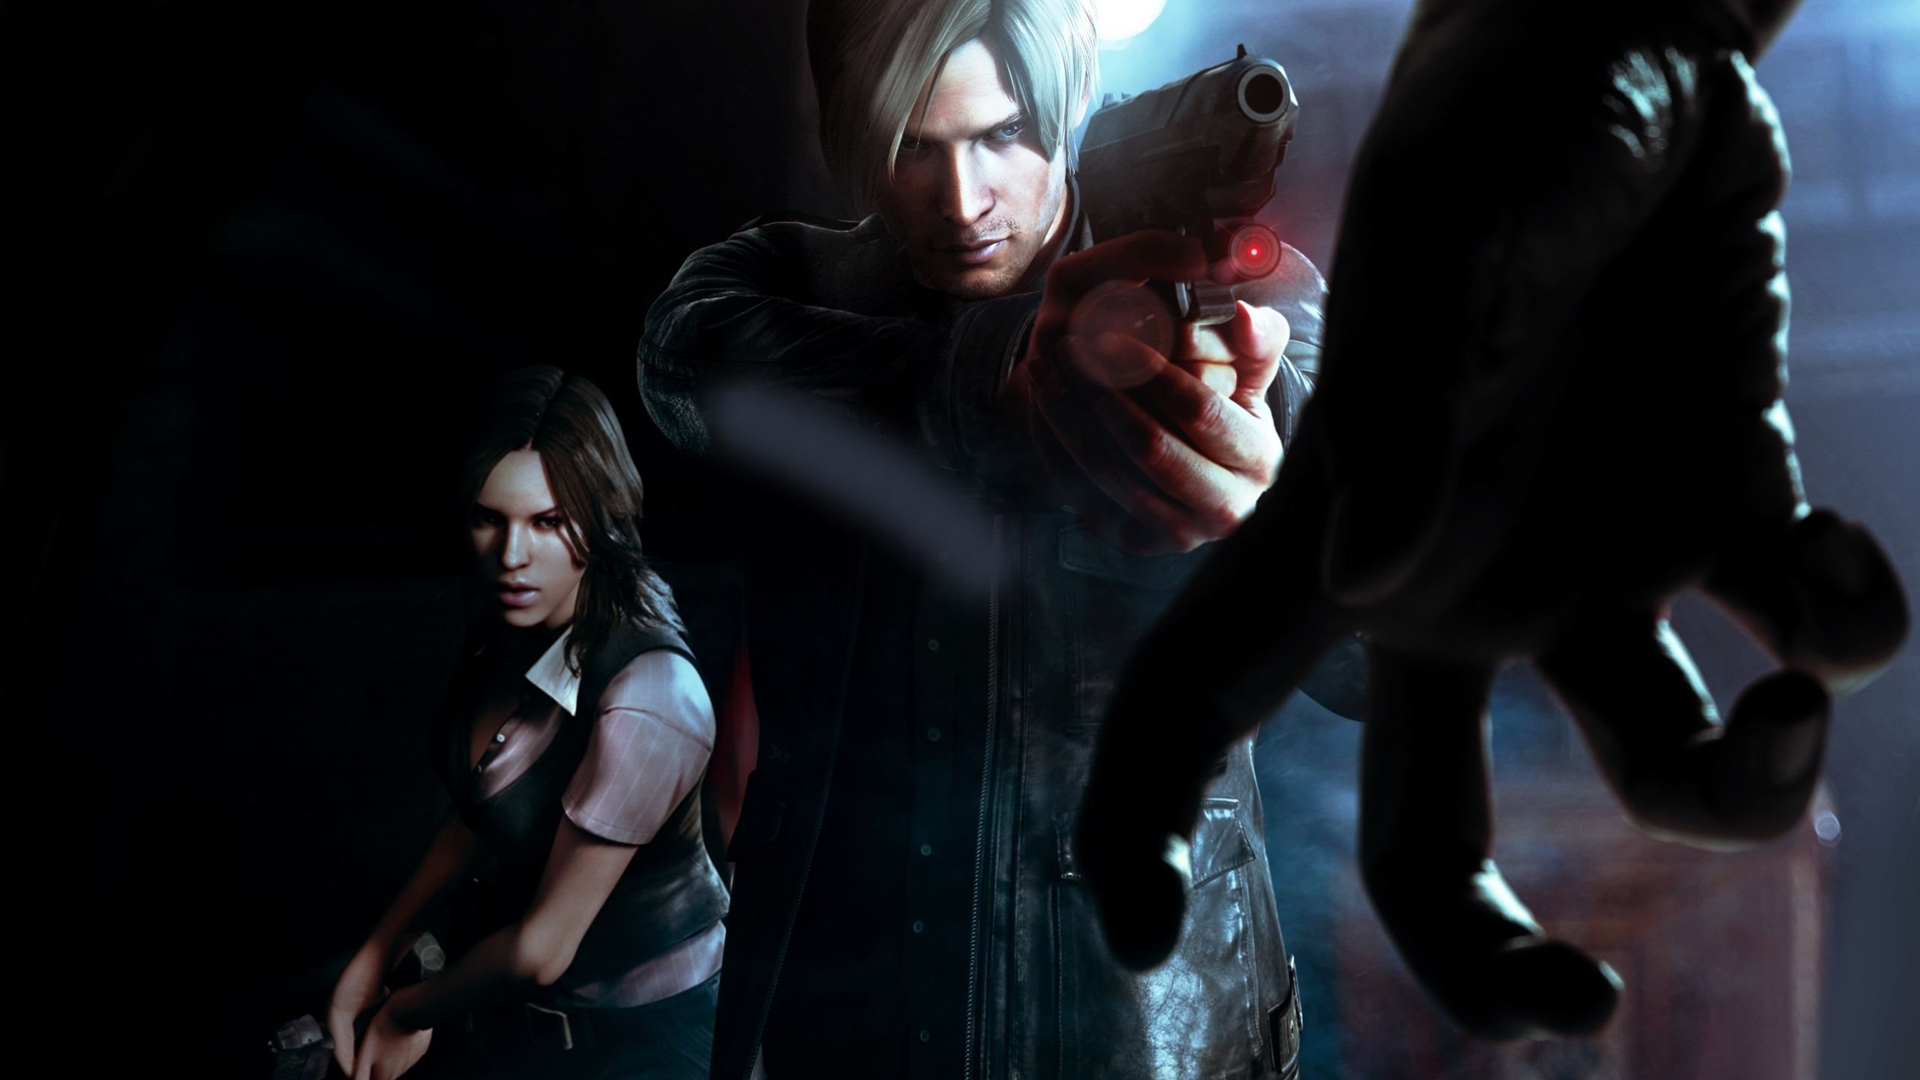 Best 52 Re6 Wallpaper On Hipwallpaper Re6 Leon Wallpapers Re6